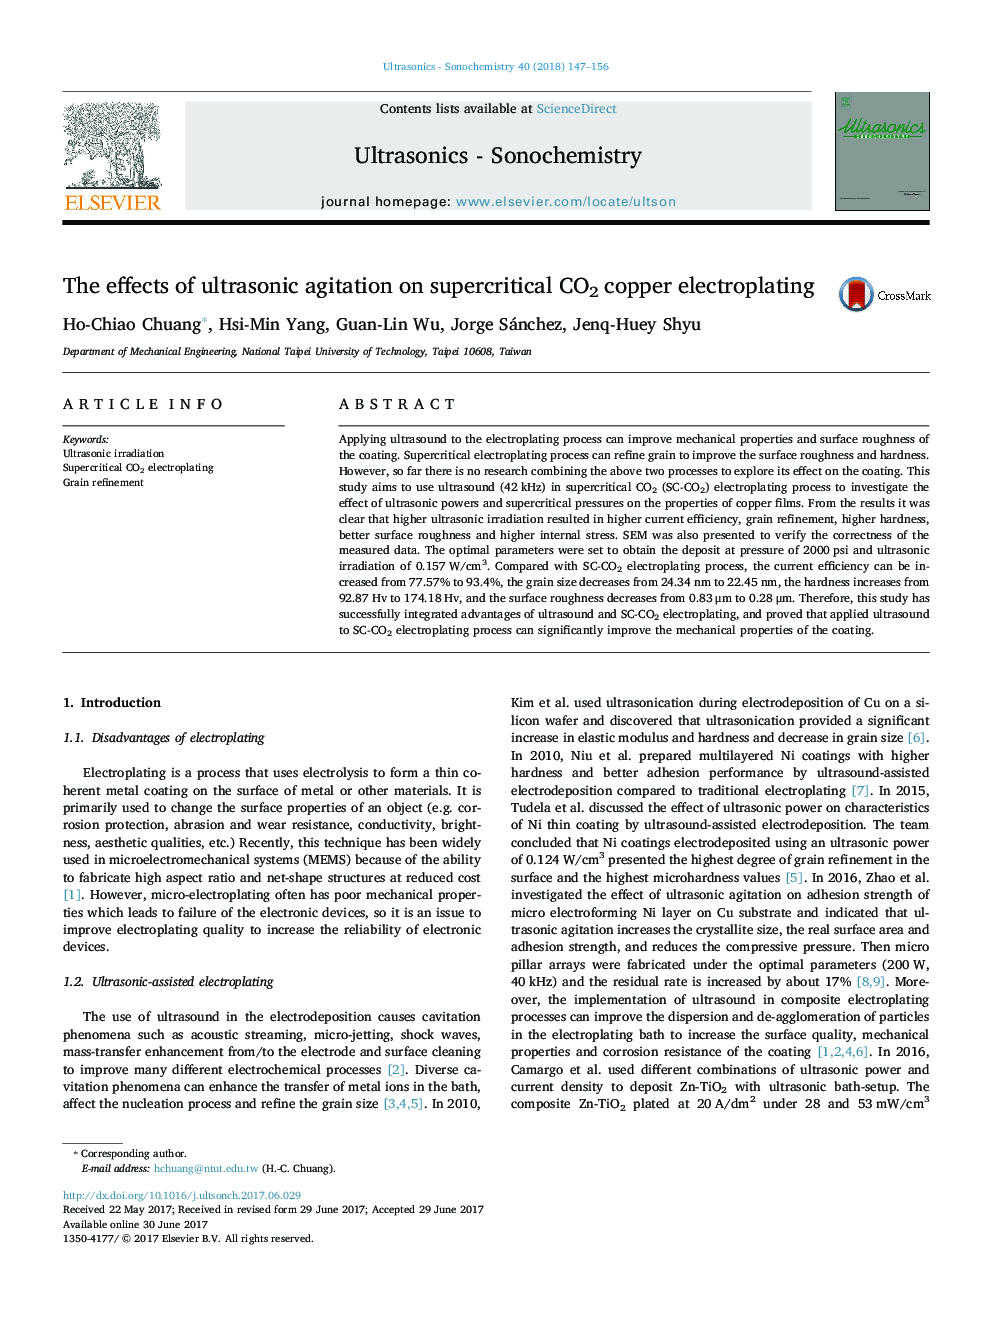 The effects of ultrasonic agitation on supercritical CO2 copper electroplating